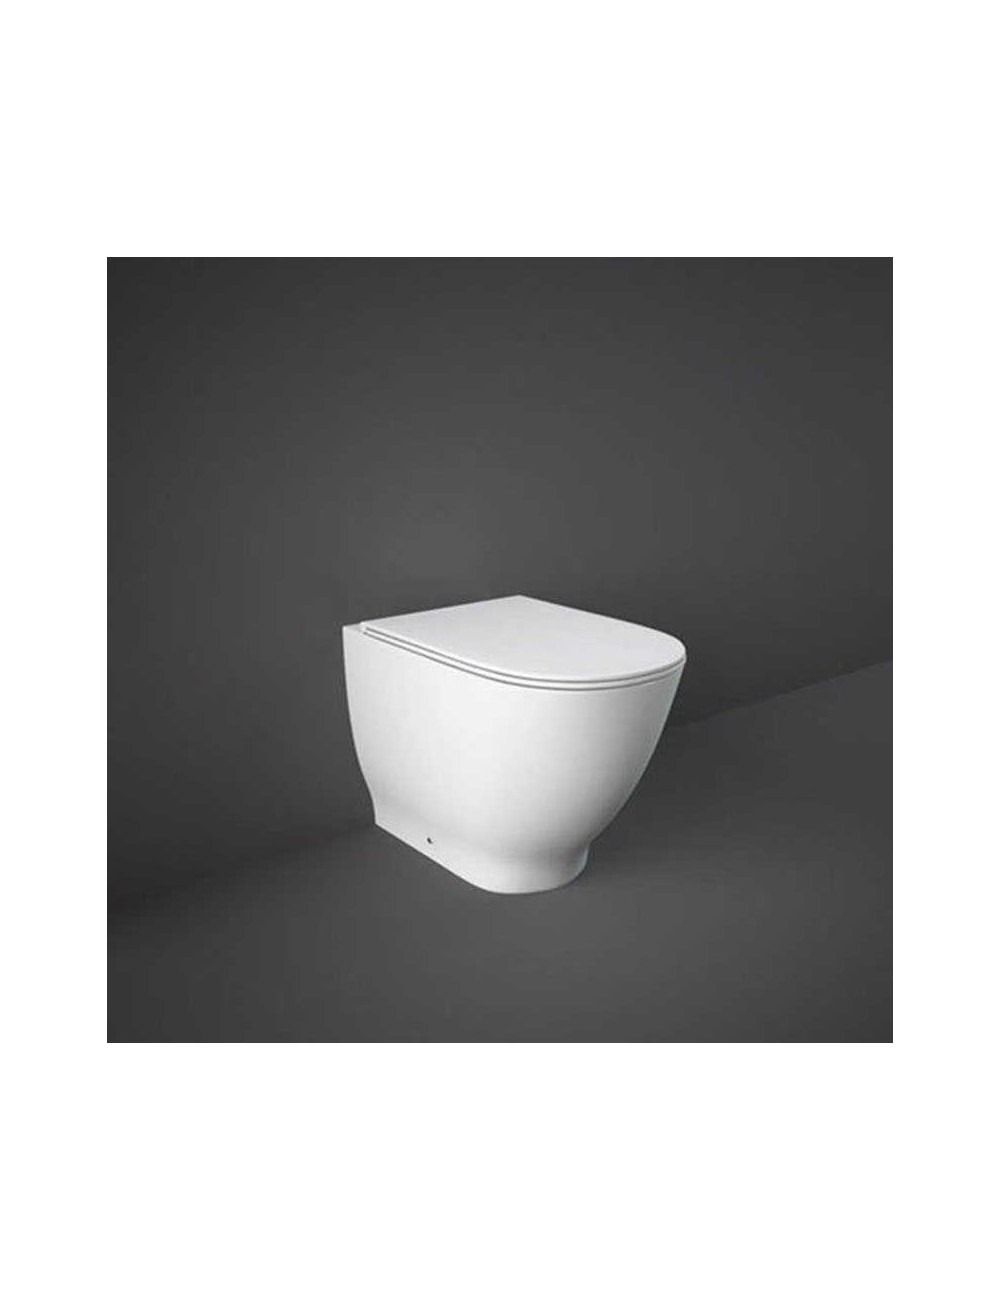 Altezza Ideale Sanitari moon wc filo muro rimless - rak ceramics